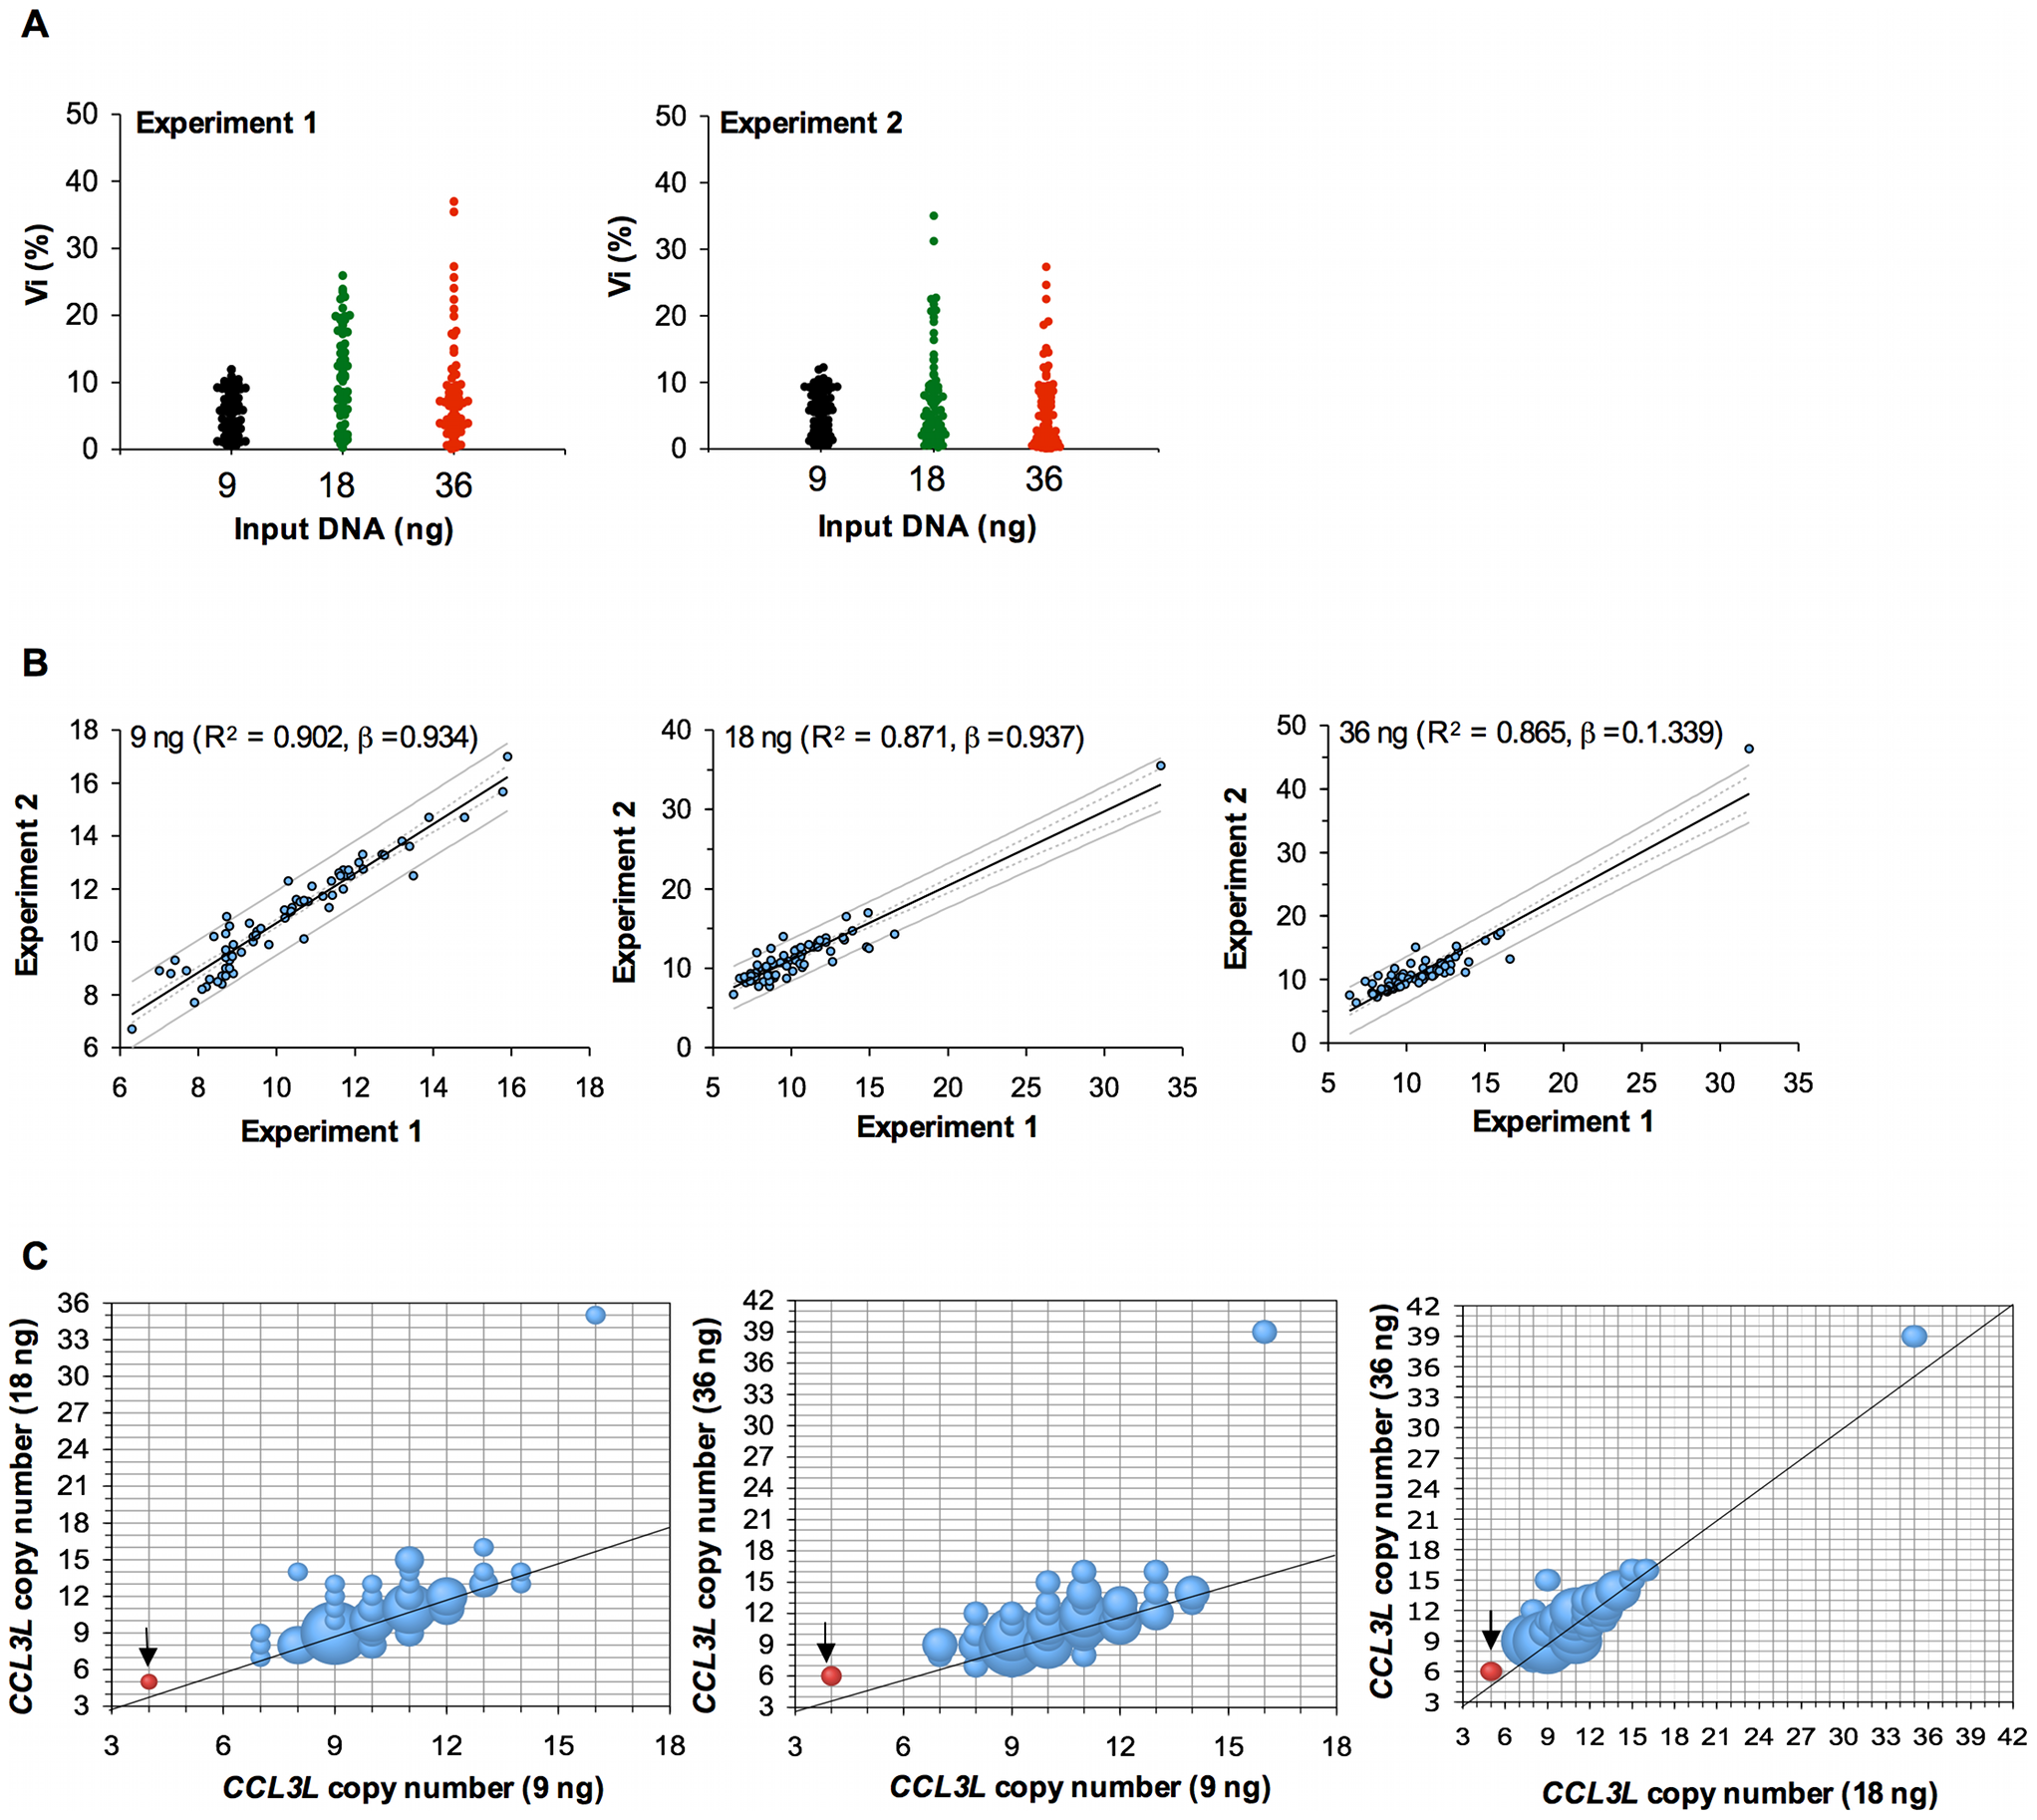 Intra-experiment reproducibility and inter-experiment variability in <i>CCL3L</i> copy-number determination.